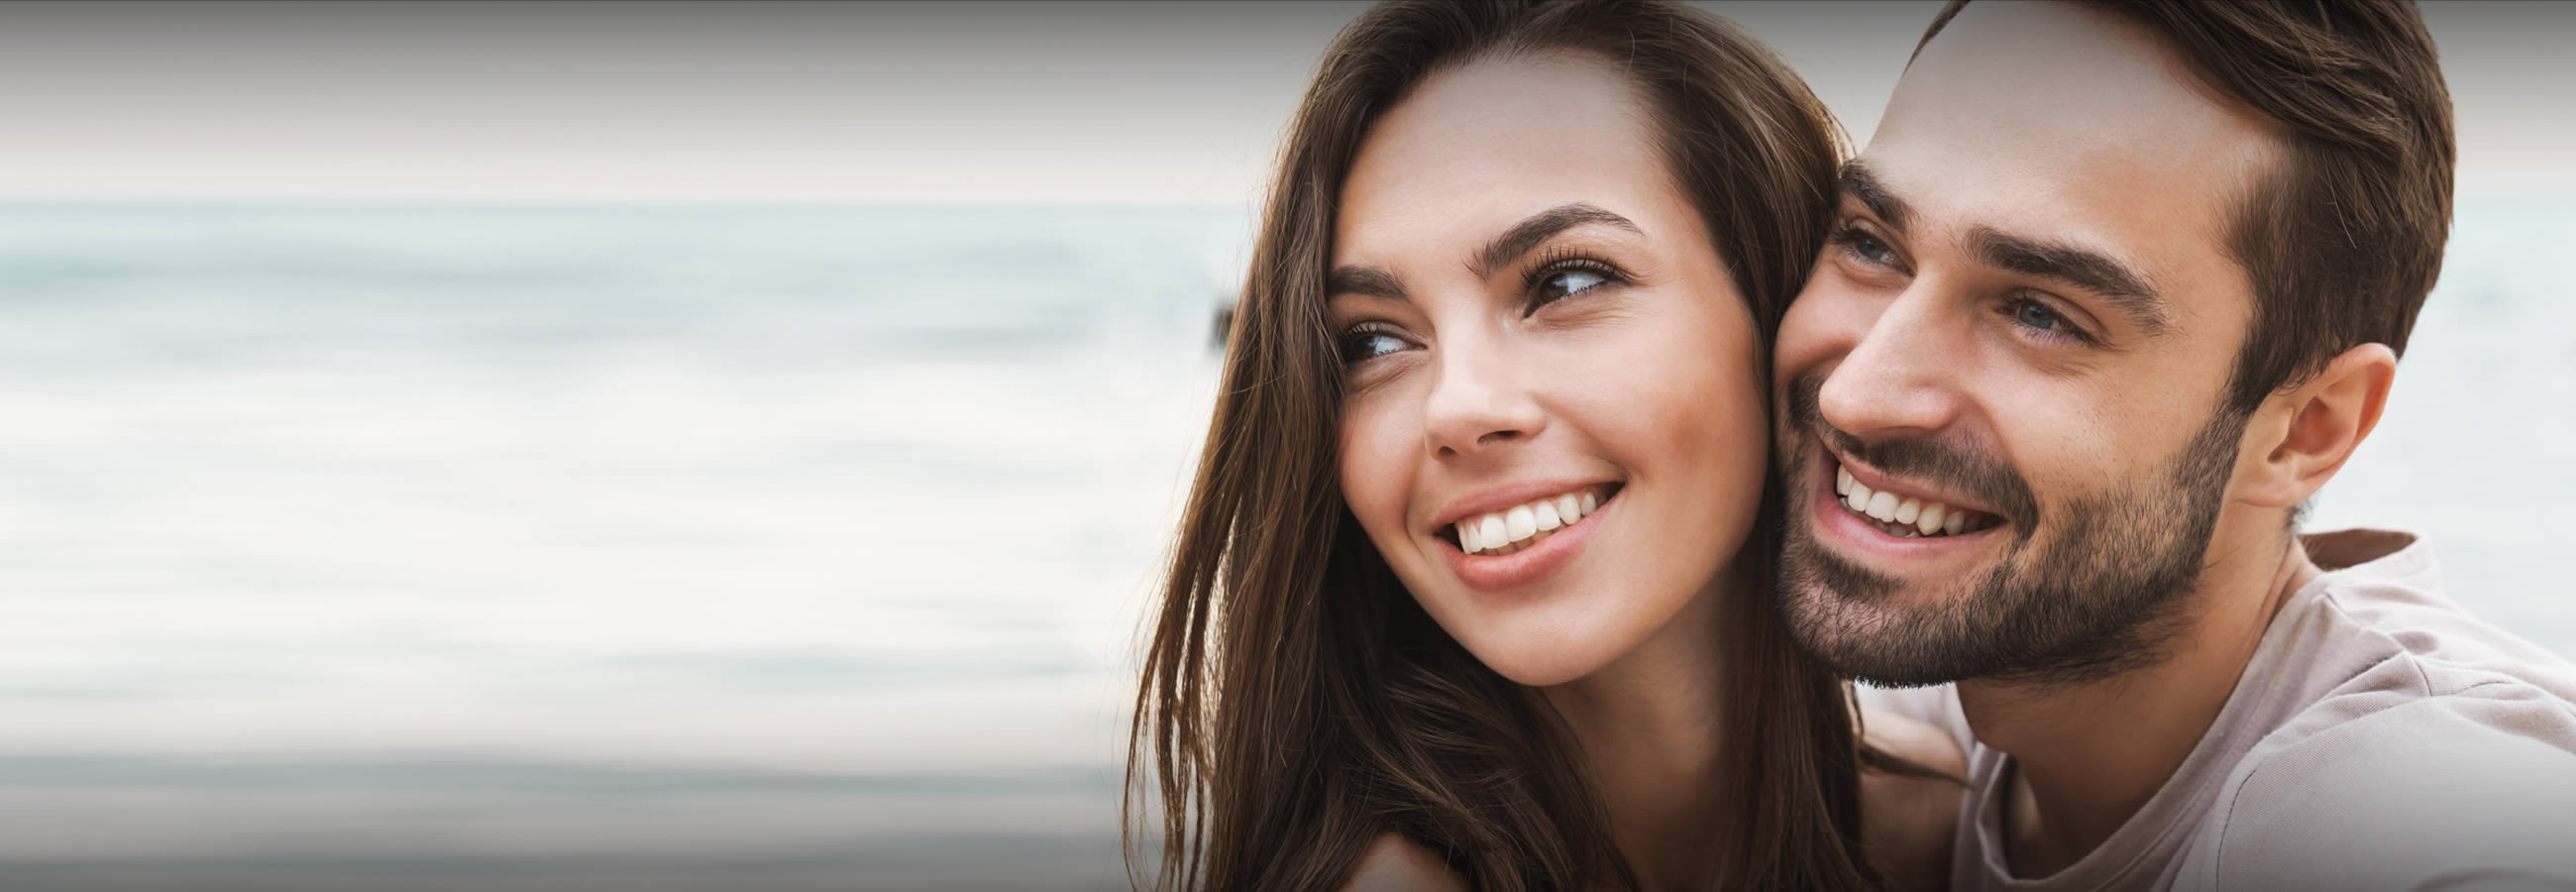 Dental implants available at North Ealing Dental in London